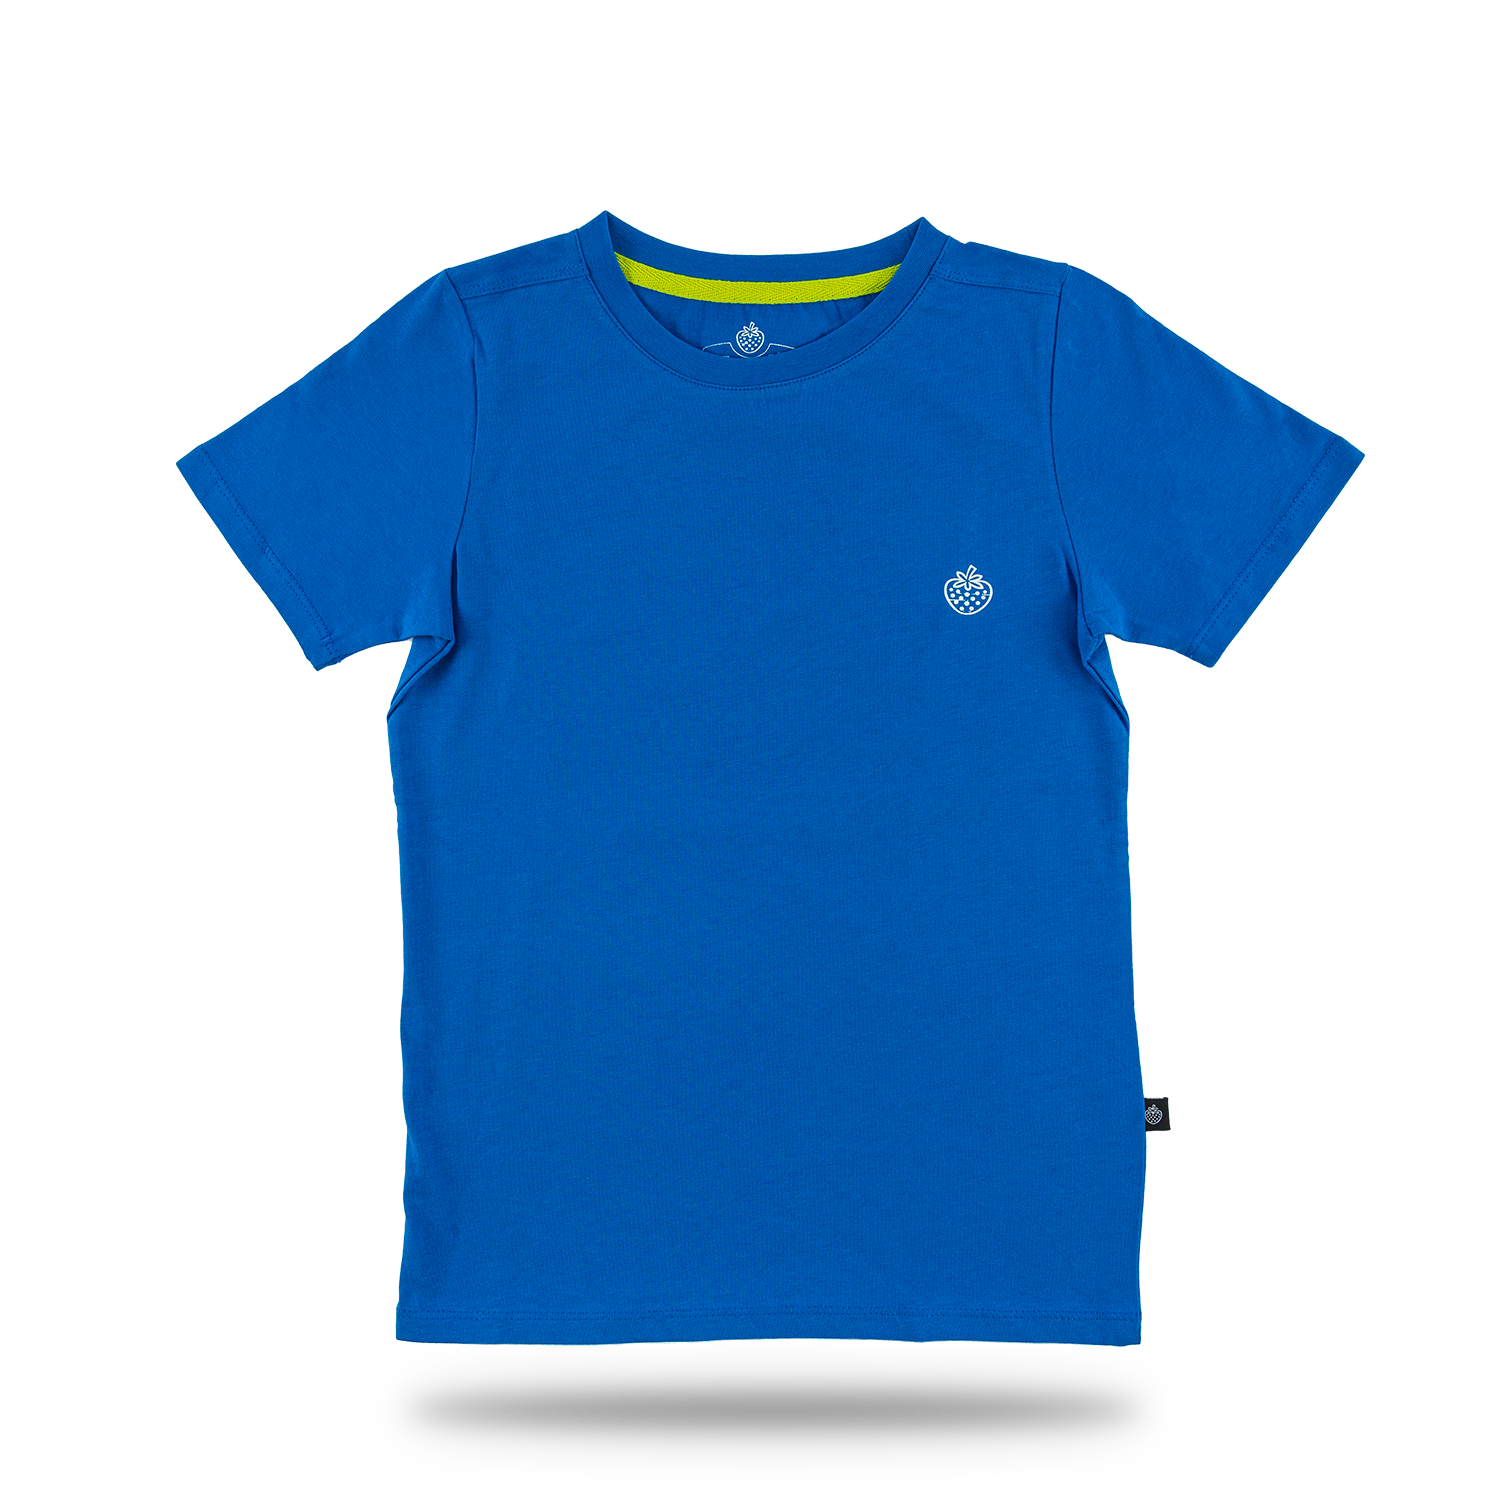 "Kids T-Shirt ""Karls"" royal blau   Gr. 152/158"